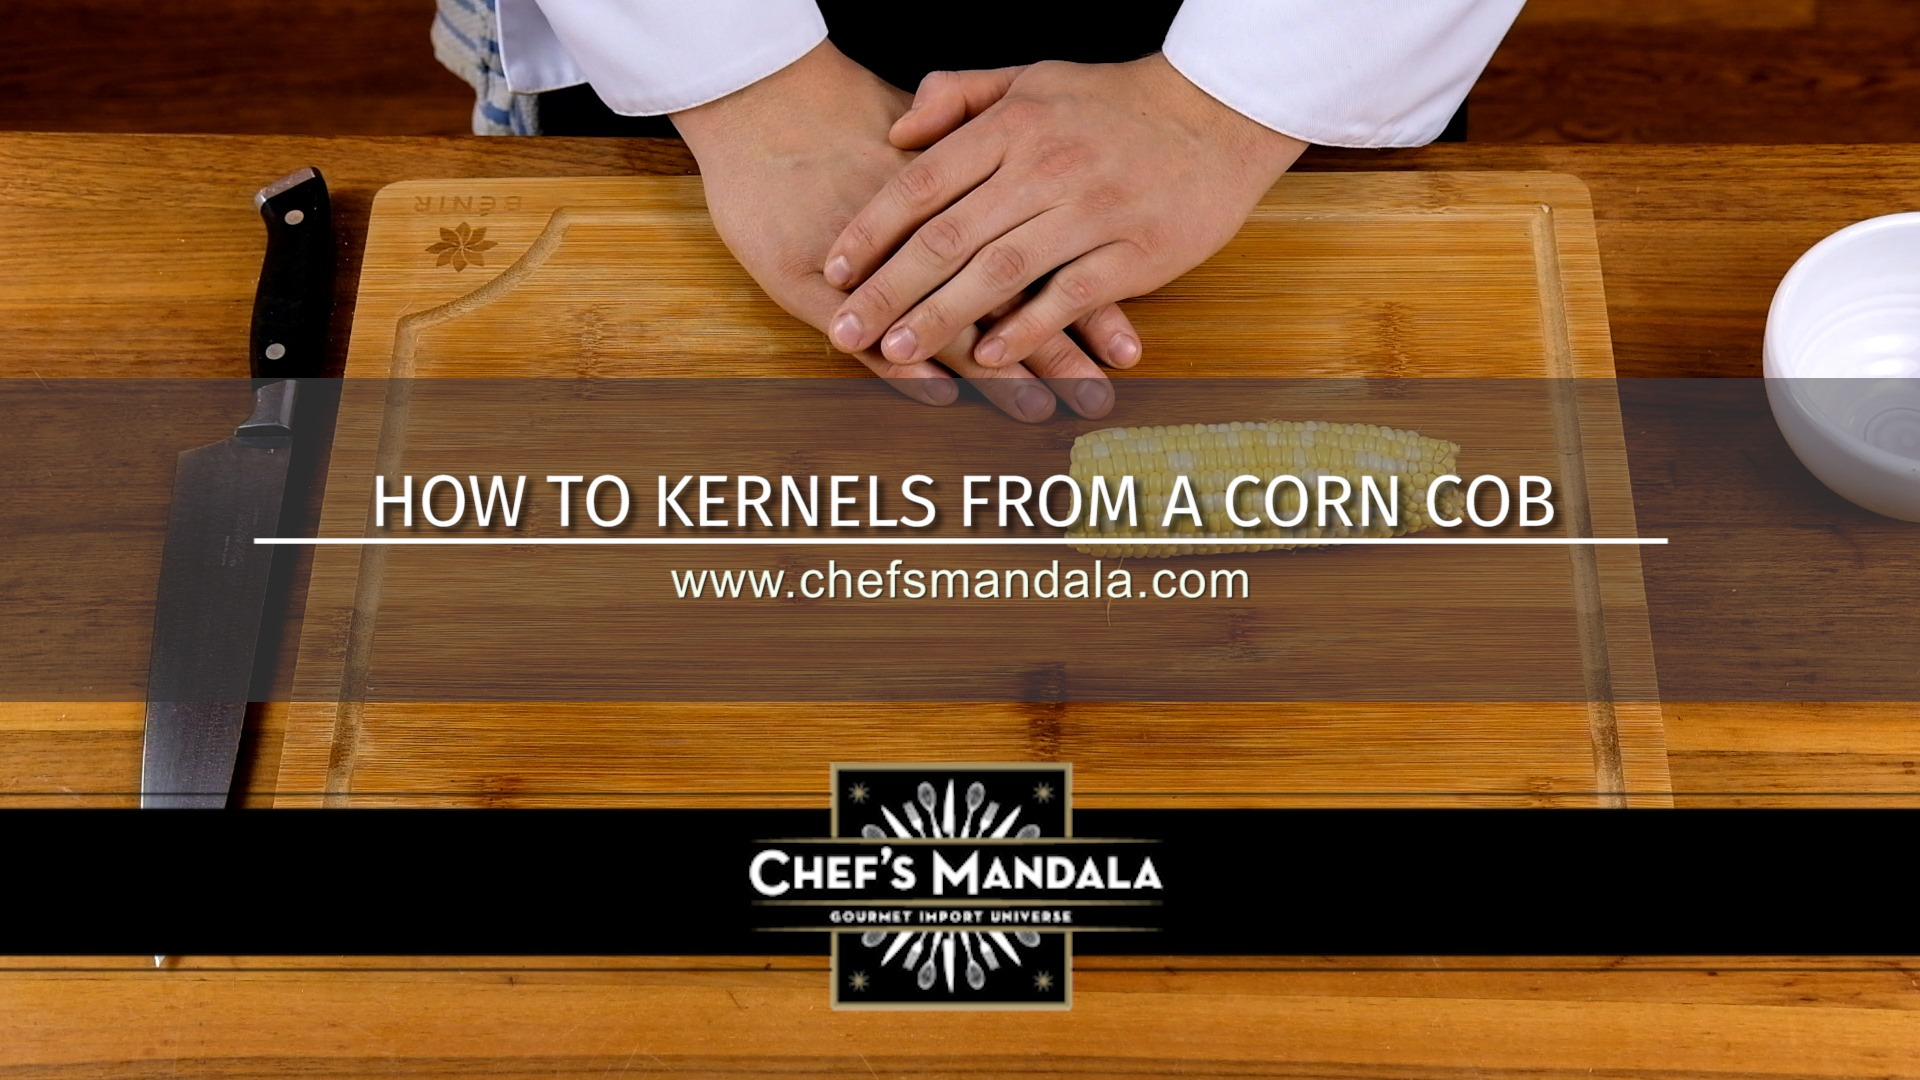 HOW TO CUT KERNELS FROM CORN COB